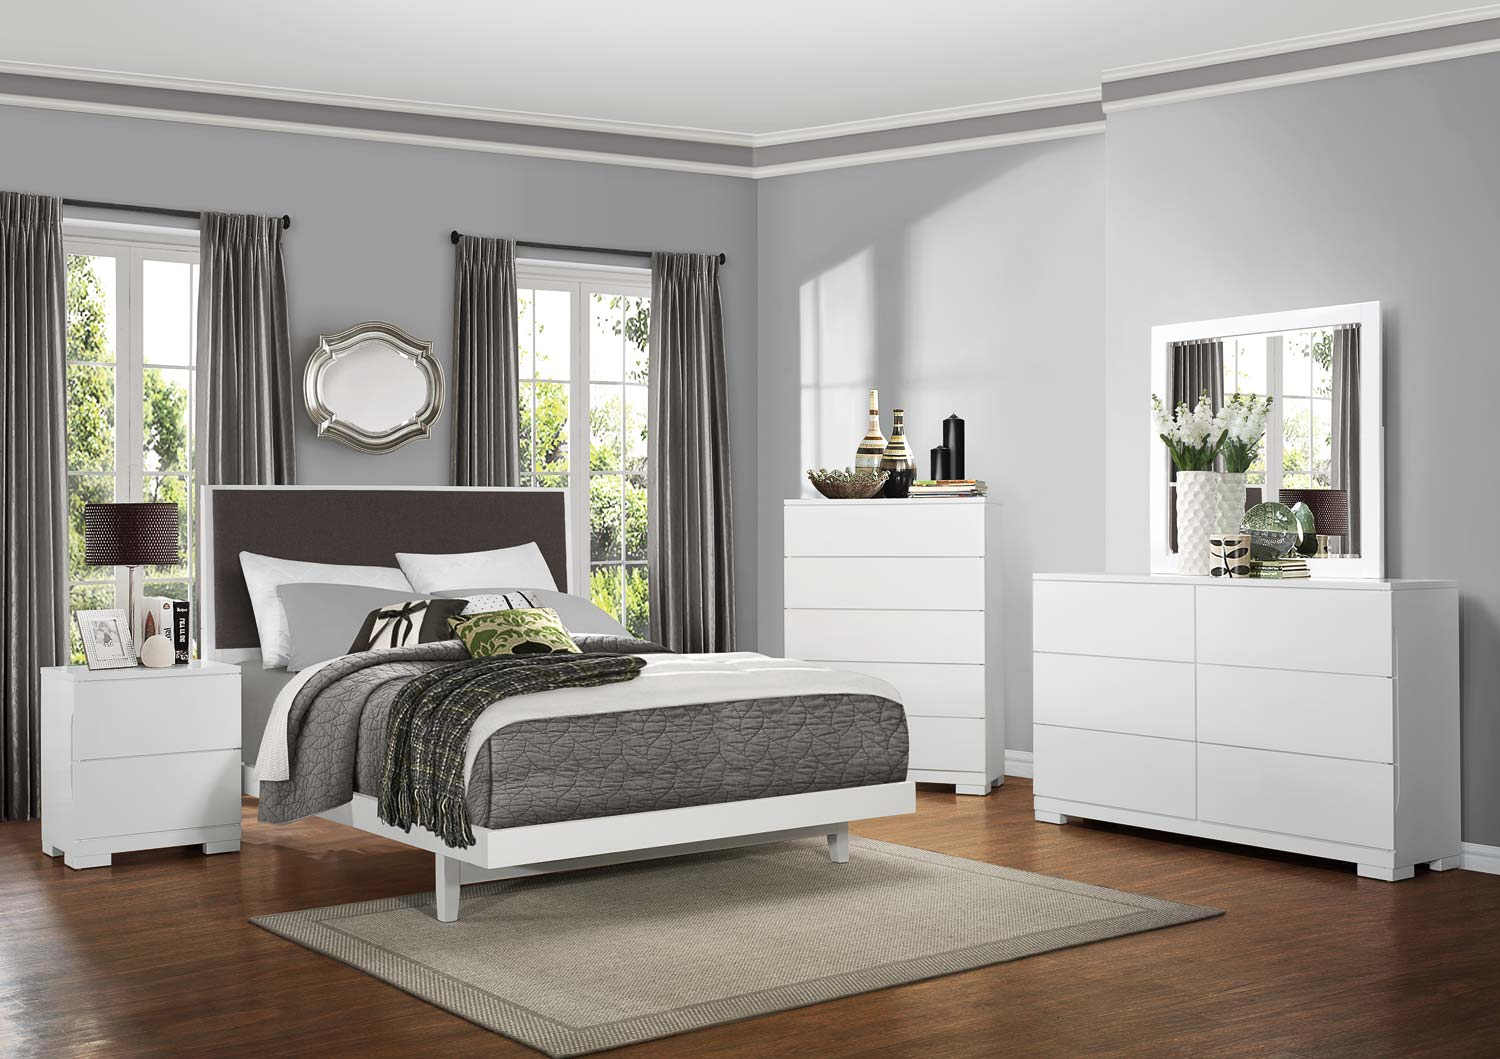 Homelegance Galva Upholstered Bedroom Collection - Bright White